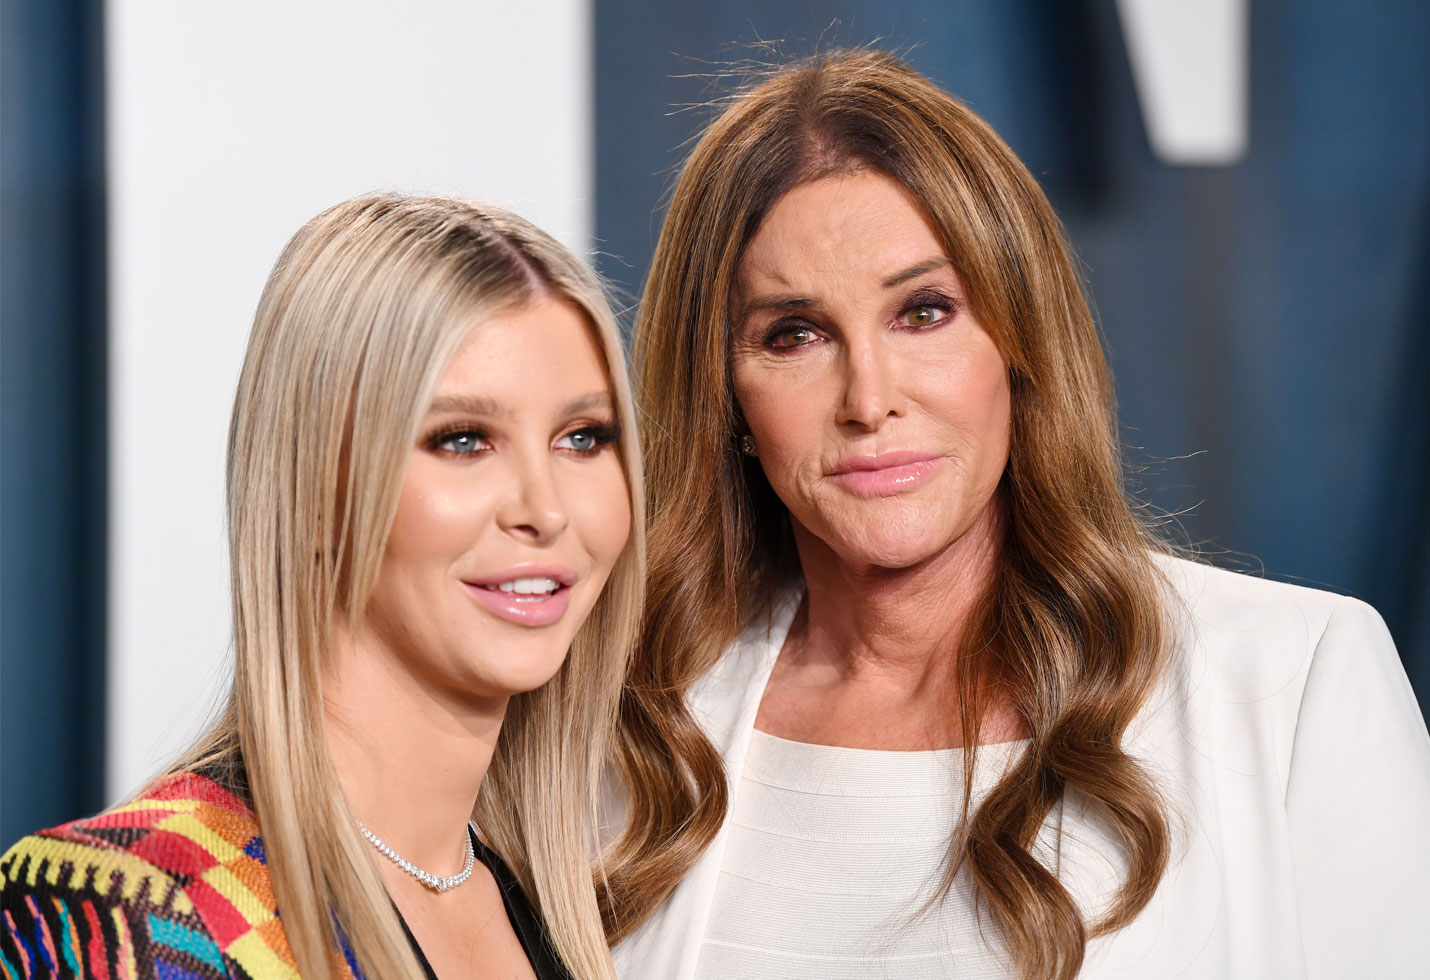 -PICTURED: Sophia Hutchins, Caitlyn Jenner